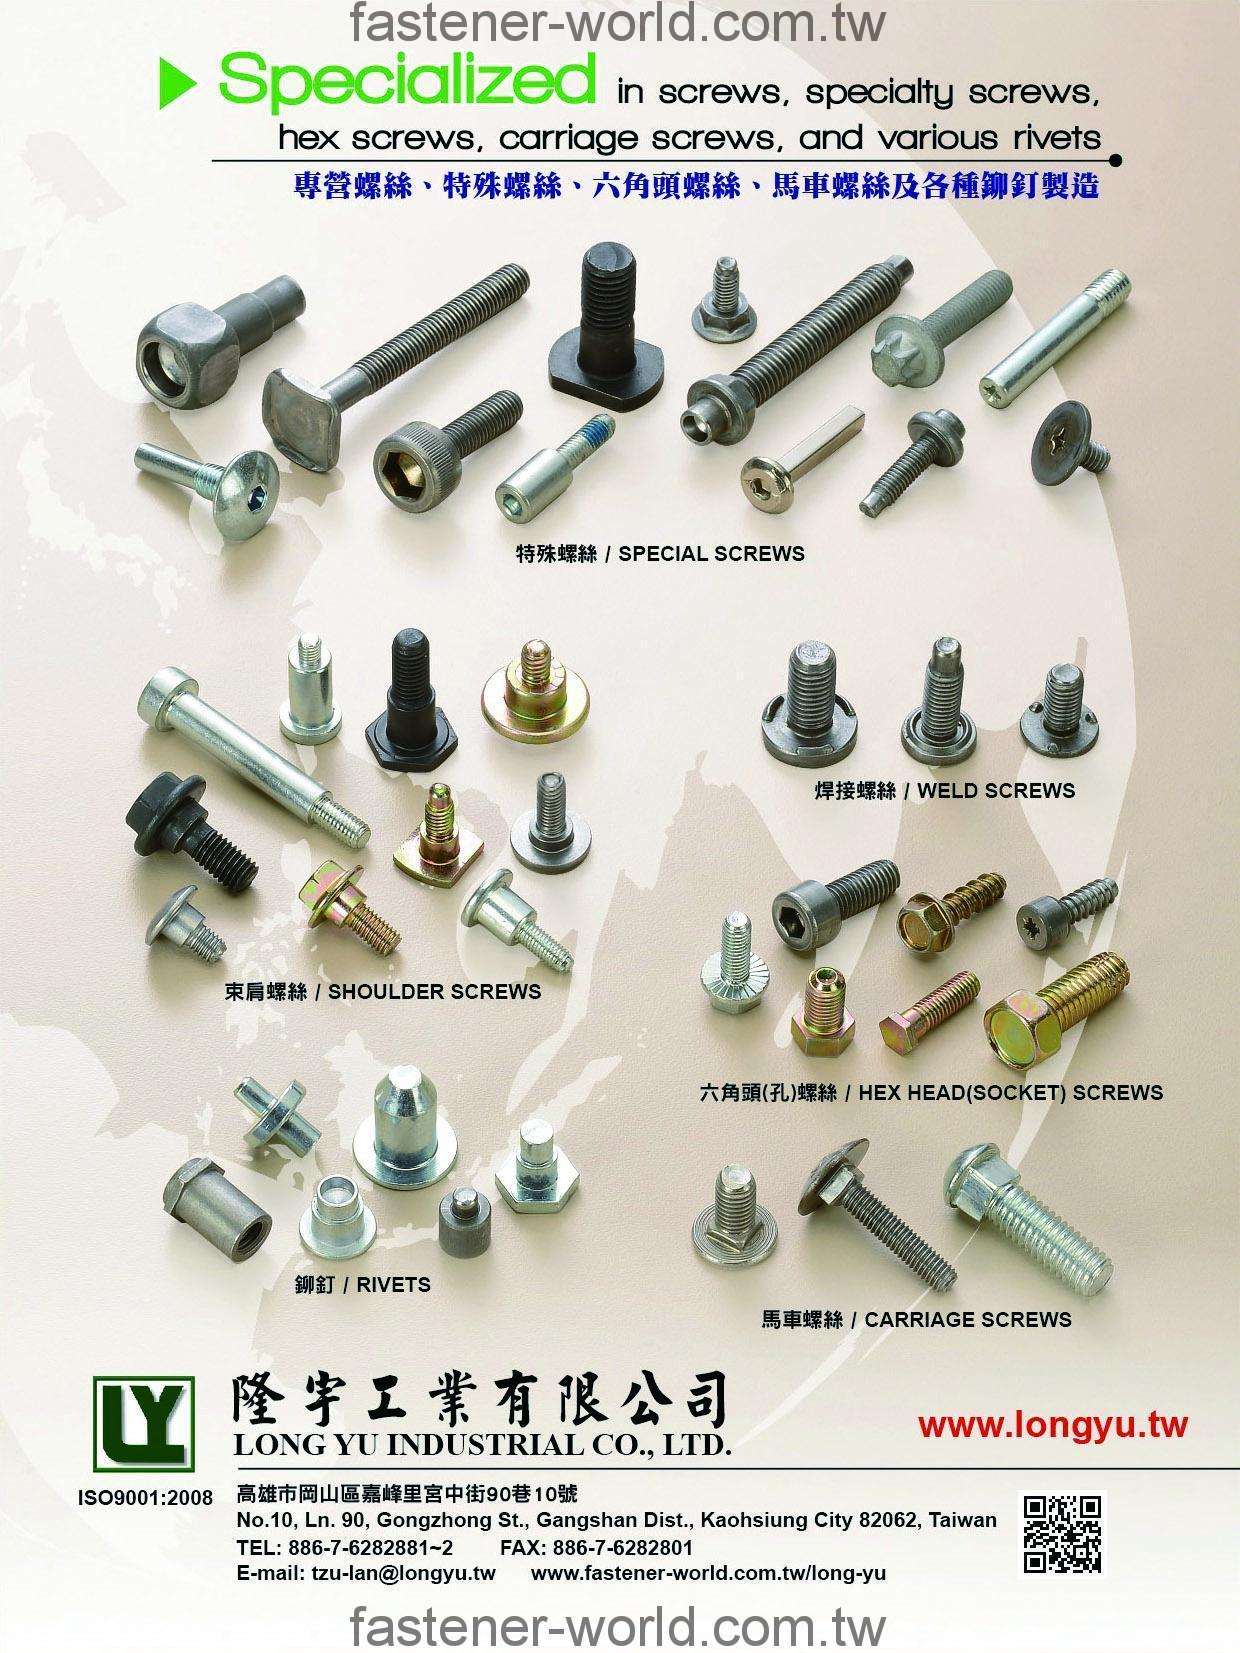 LONG YU FASTENERS INDUSTRIAL CO., LTD. Online Catalogues